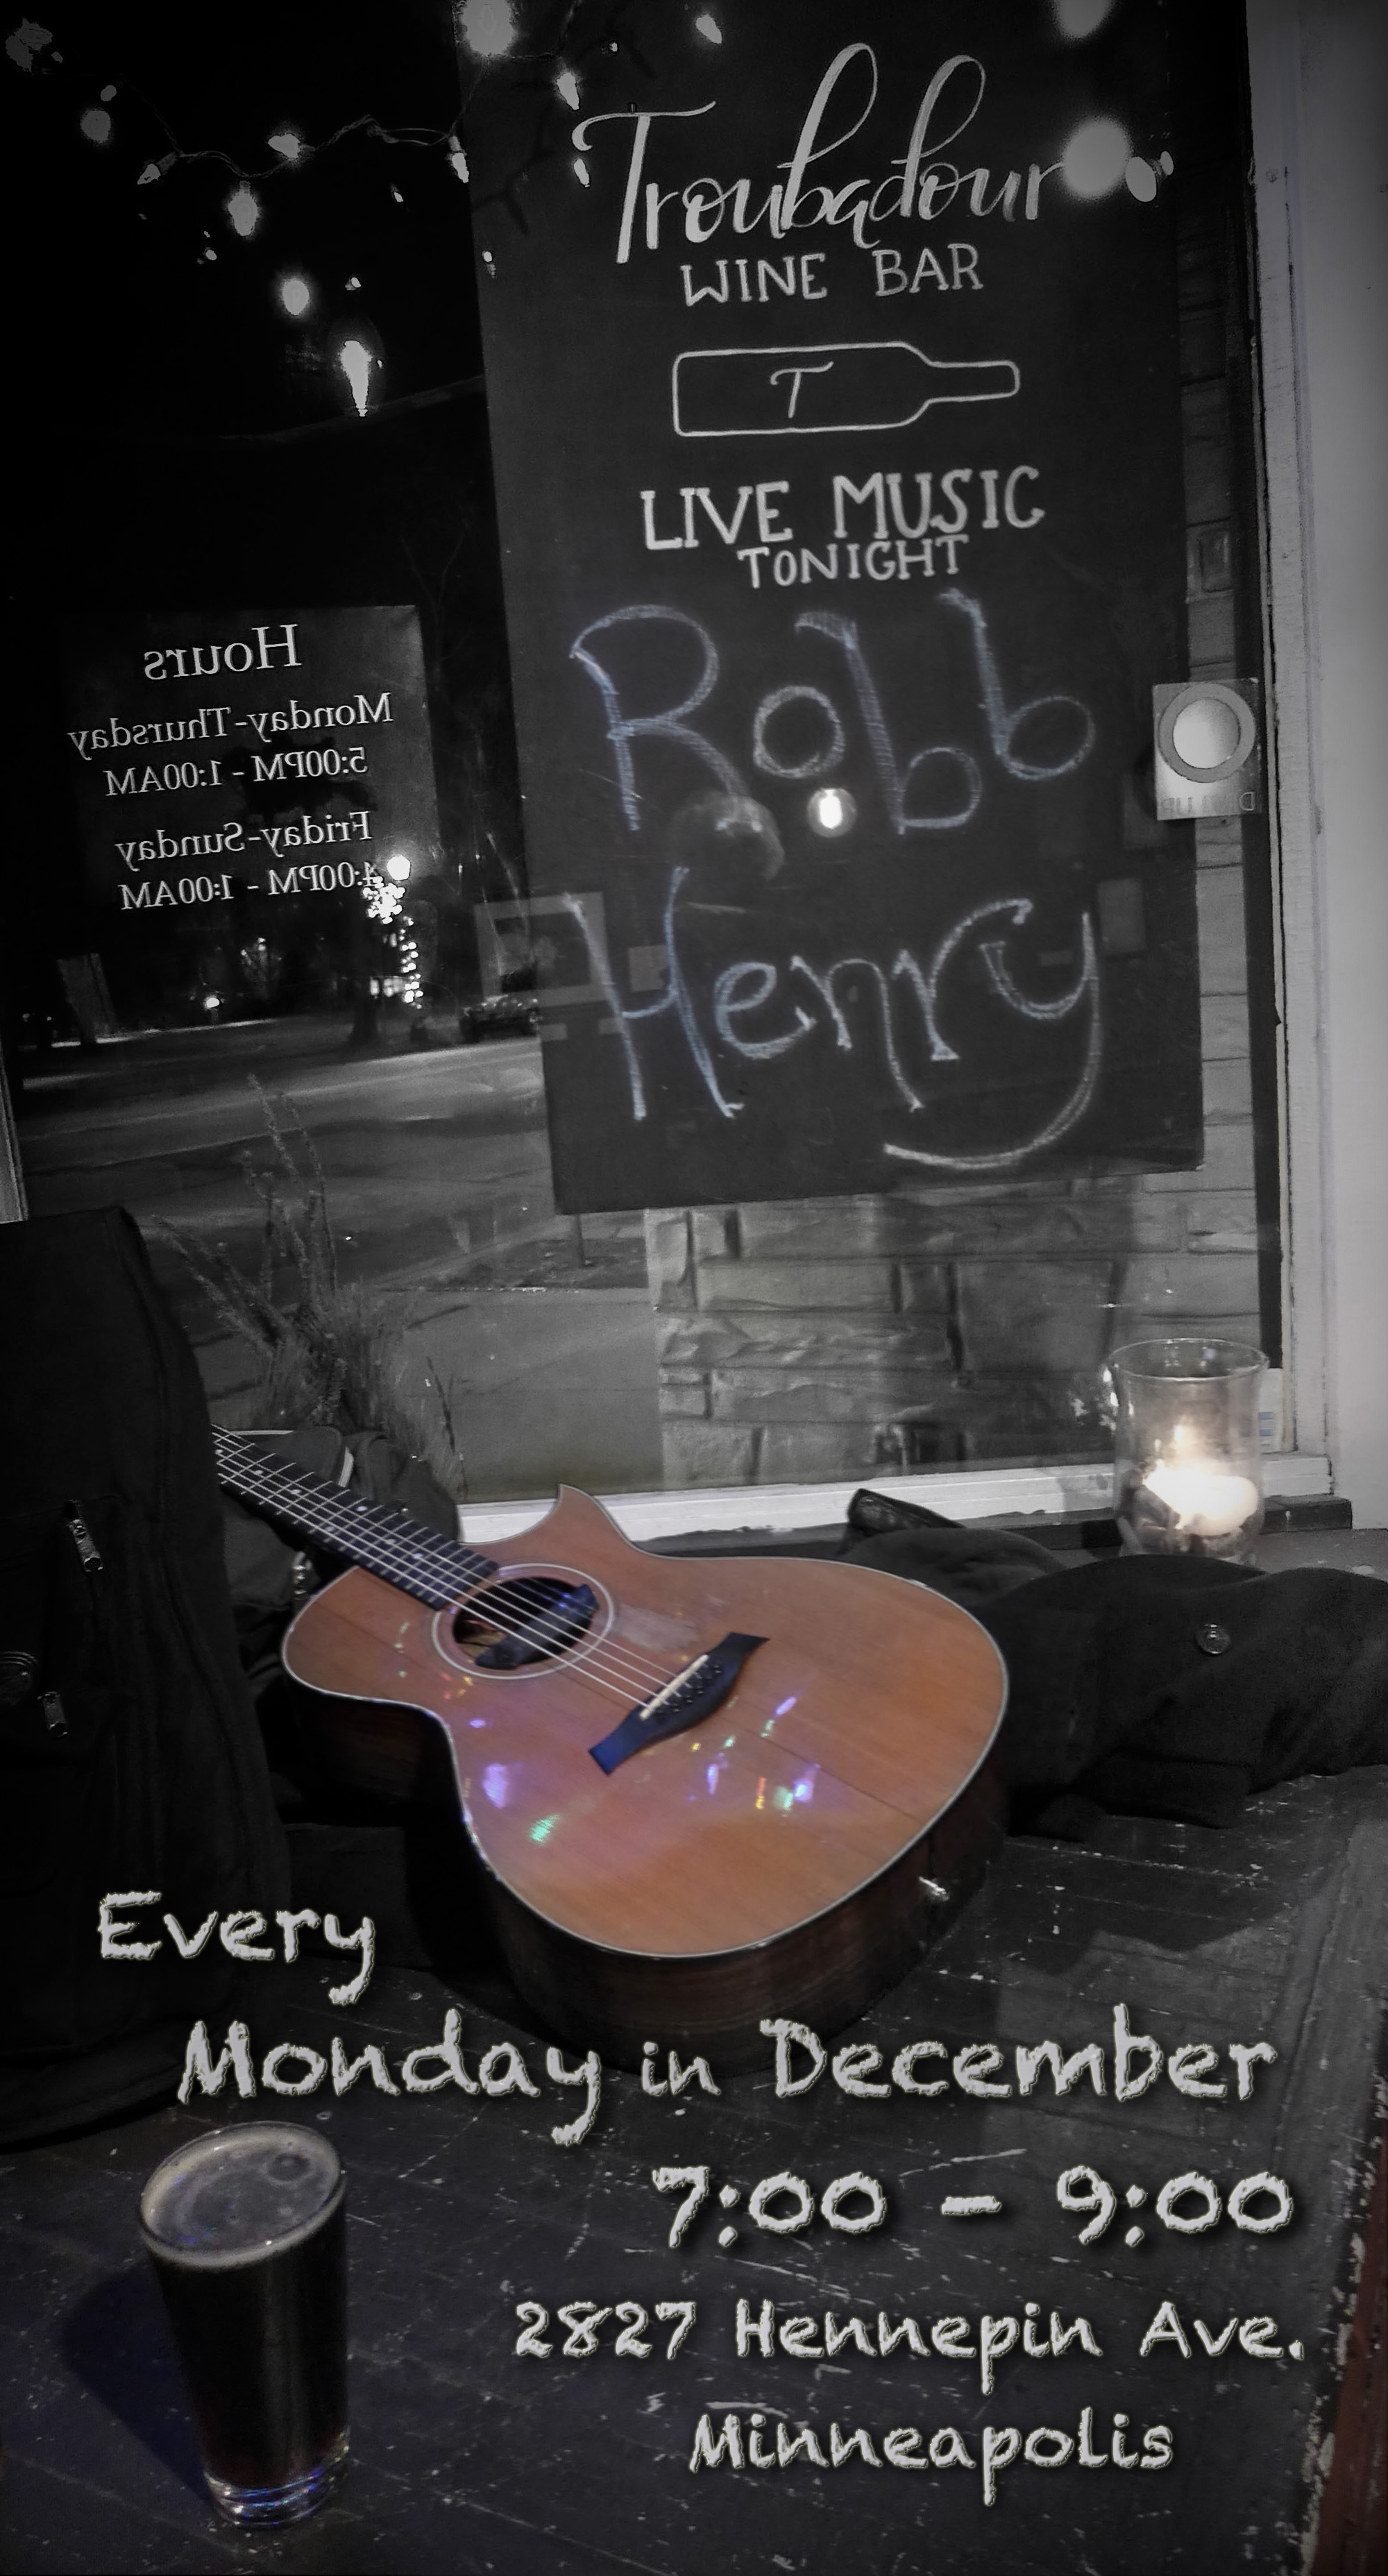 Every Monday in December at the Troubadour Wine Bar